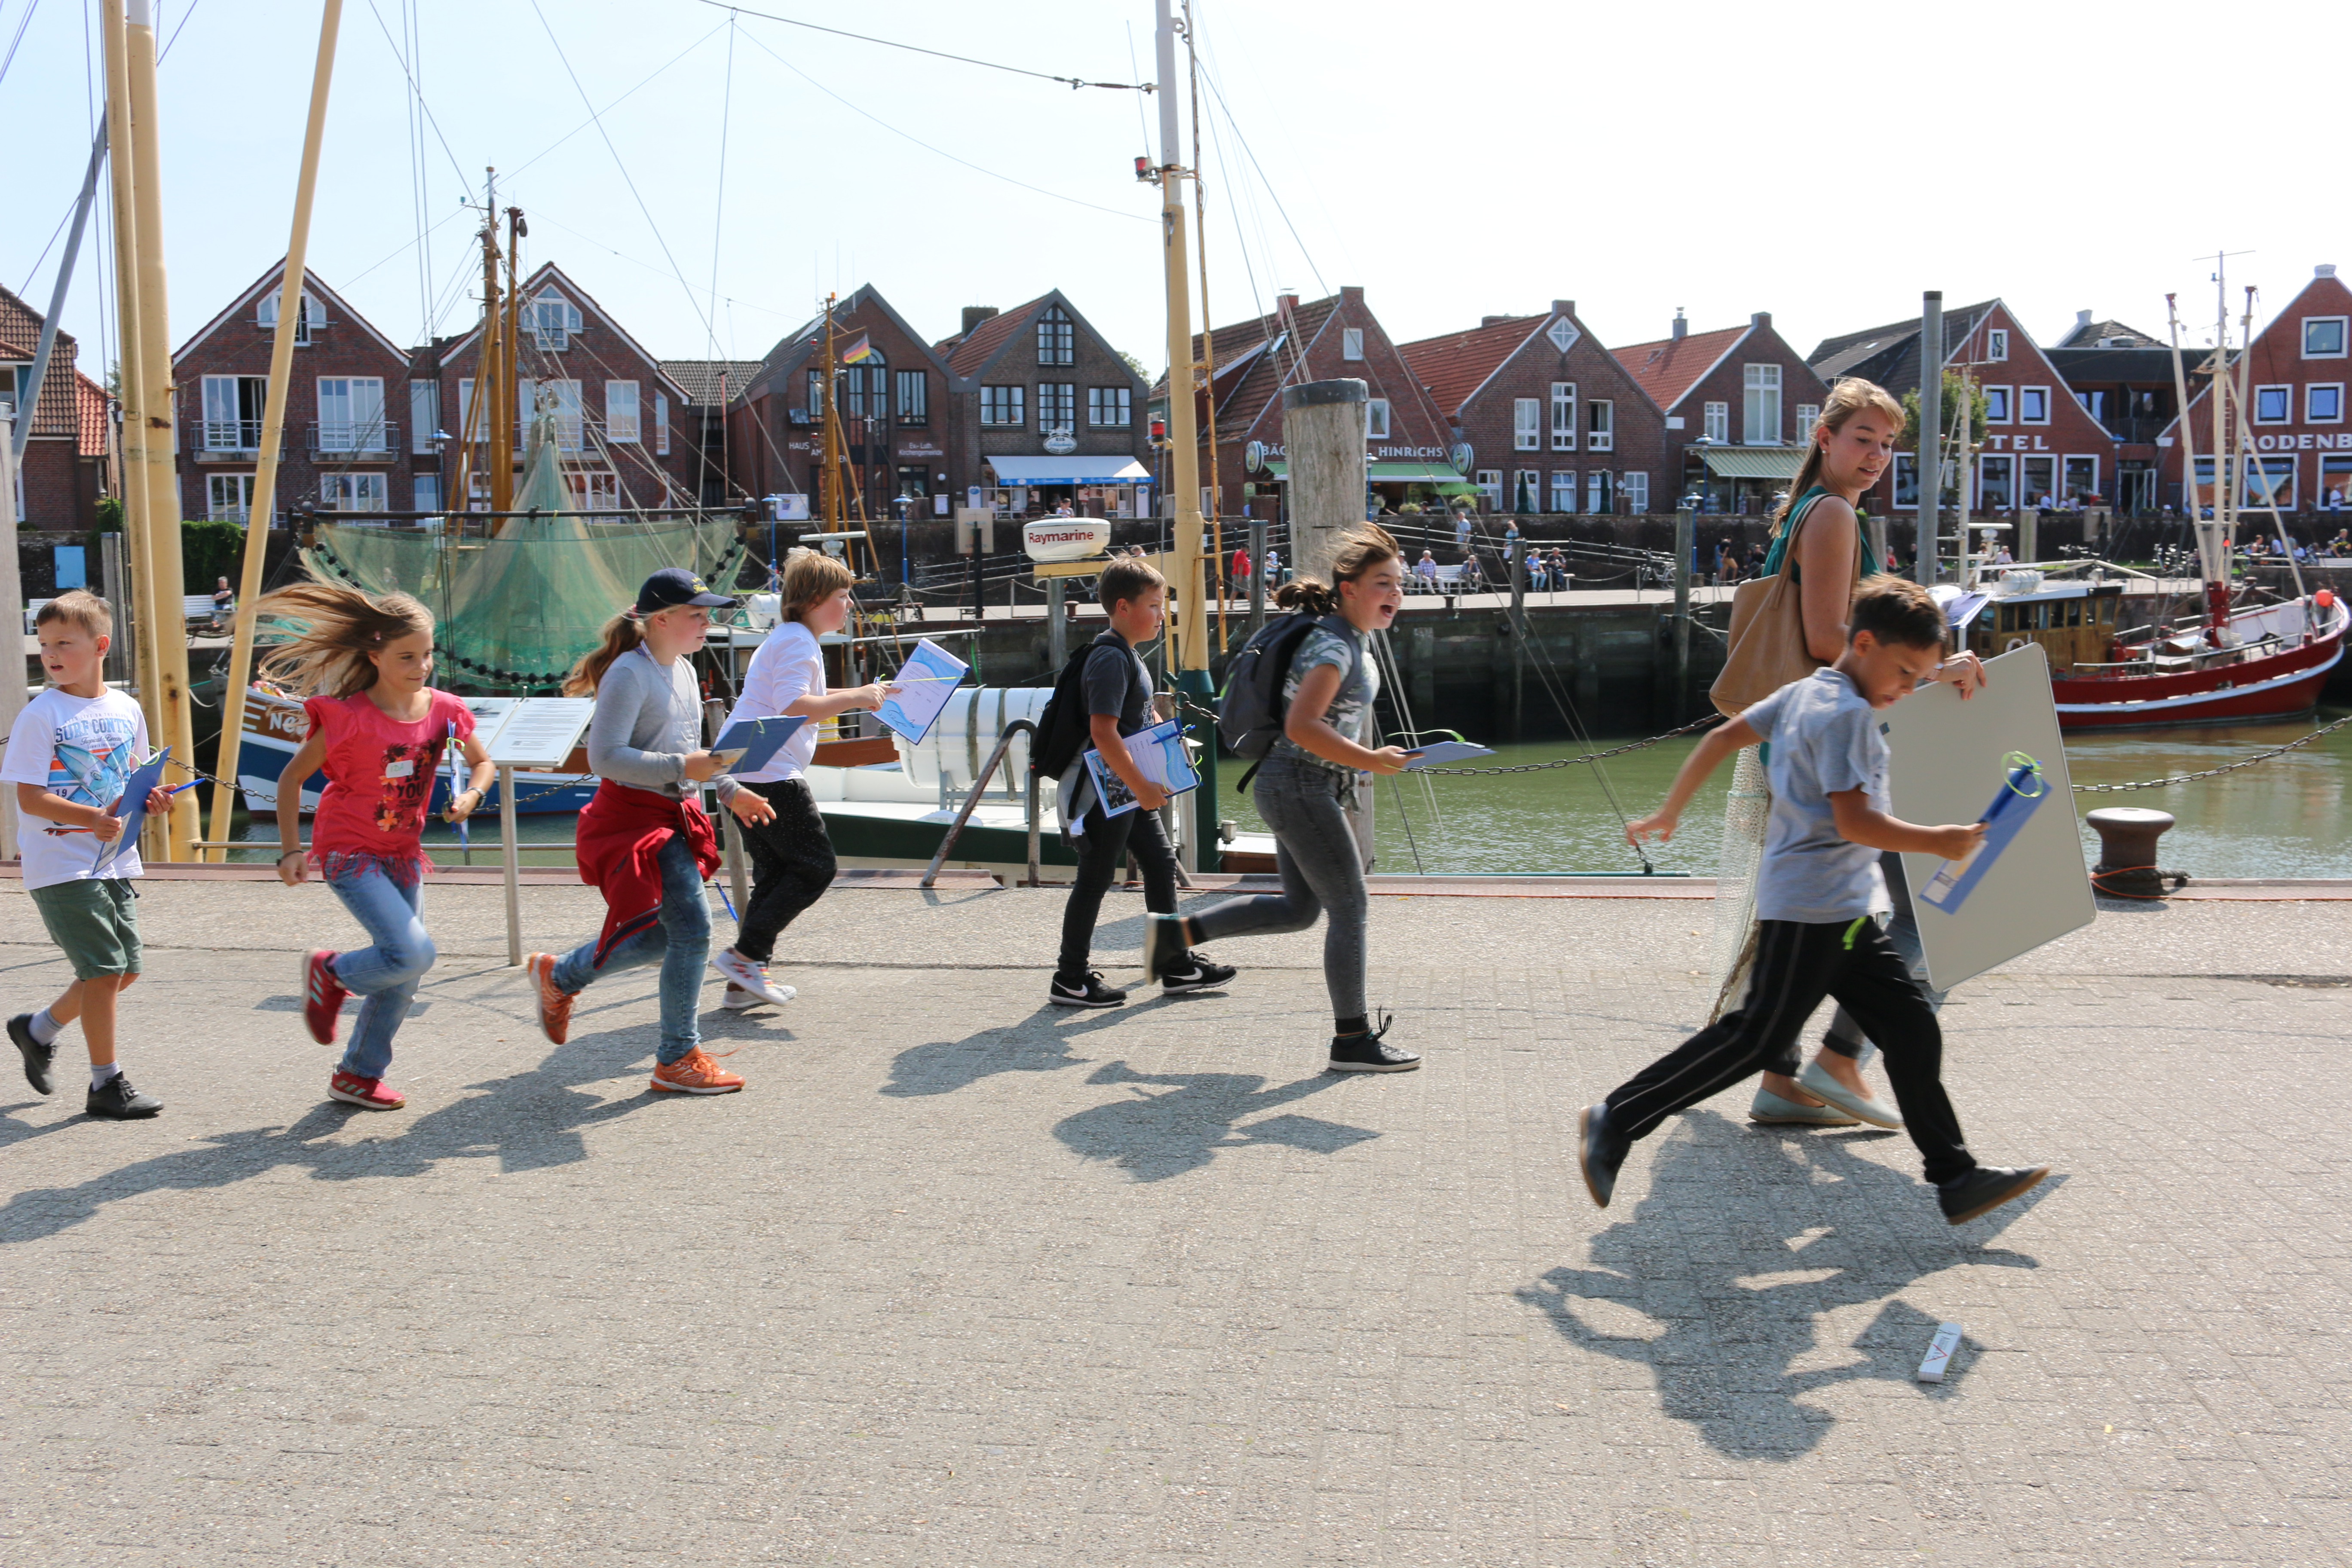 Students in the North Sea Region of Lower Saxony learn about small-scale coastal fisheries